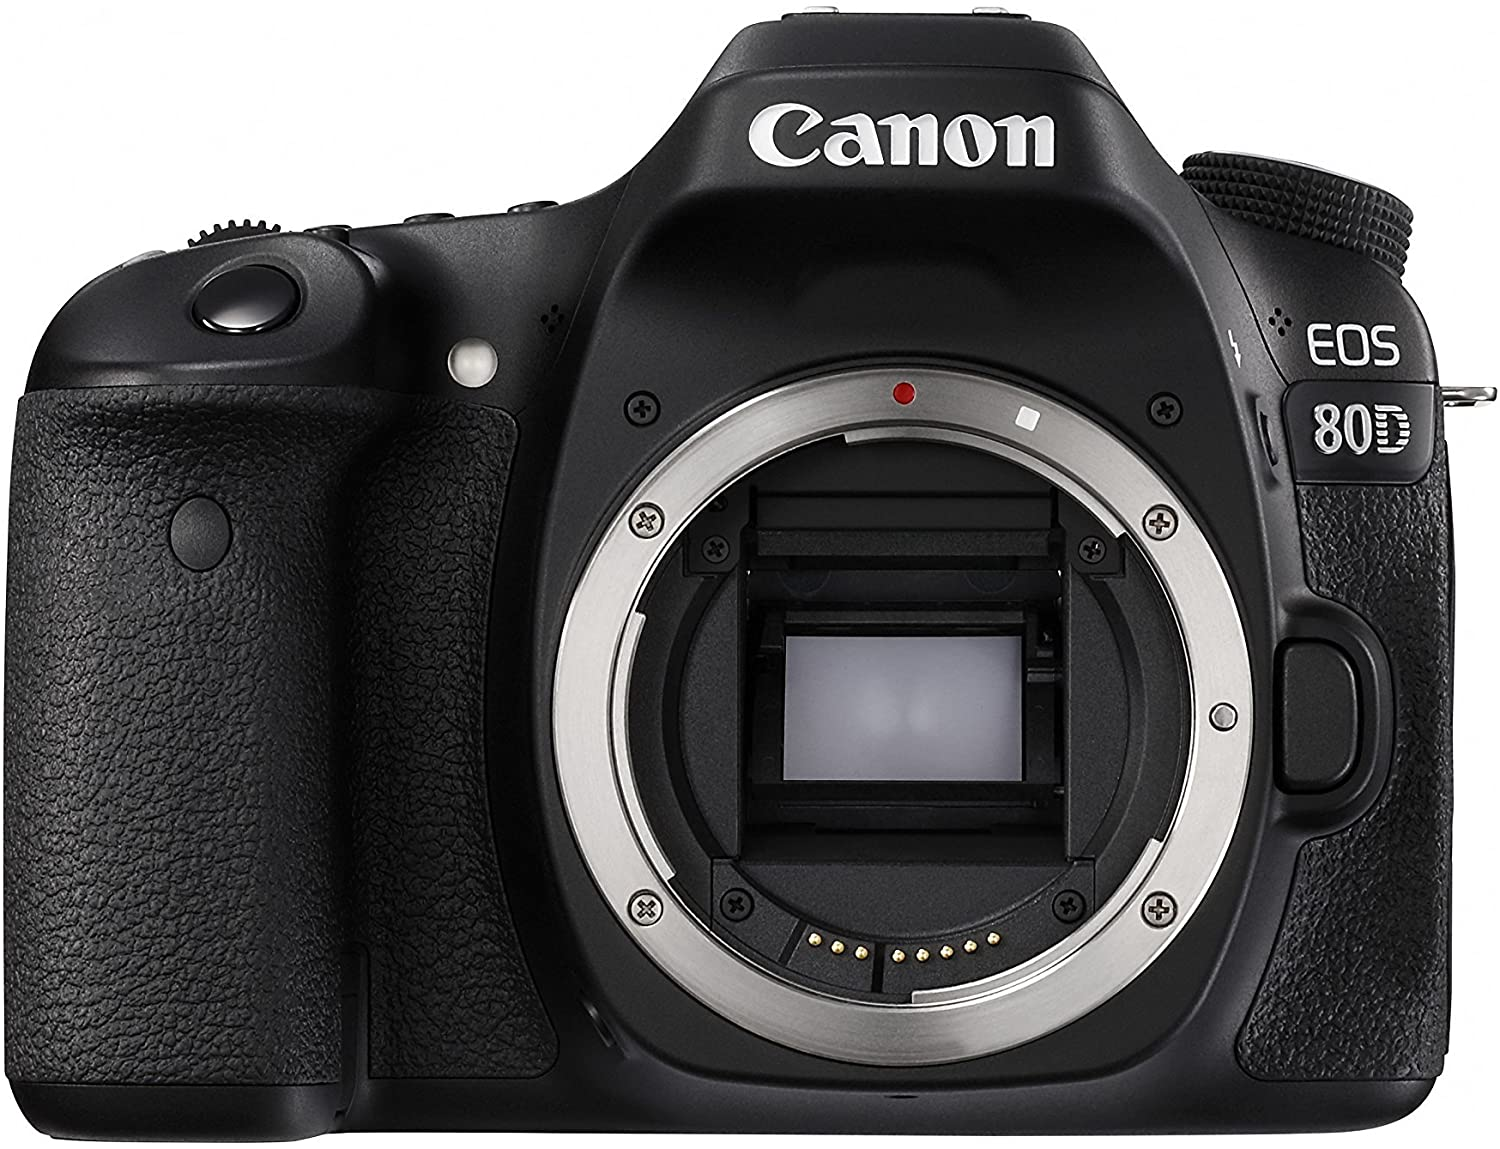 Cheap mail order specialty store Canon EOS 80D Digital Gifts SLR Camera Renewed Body Black